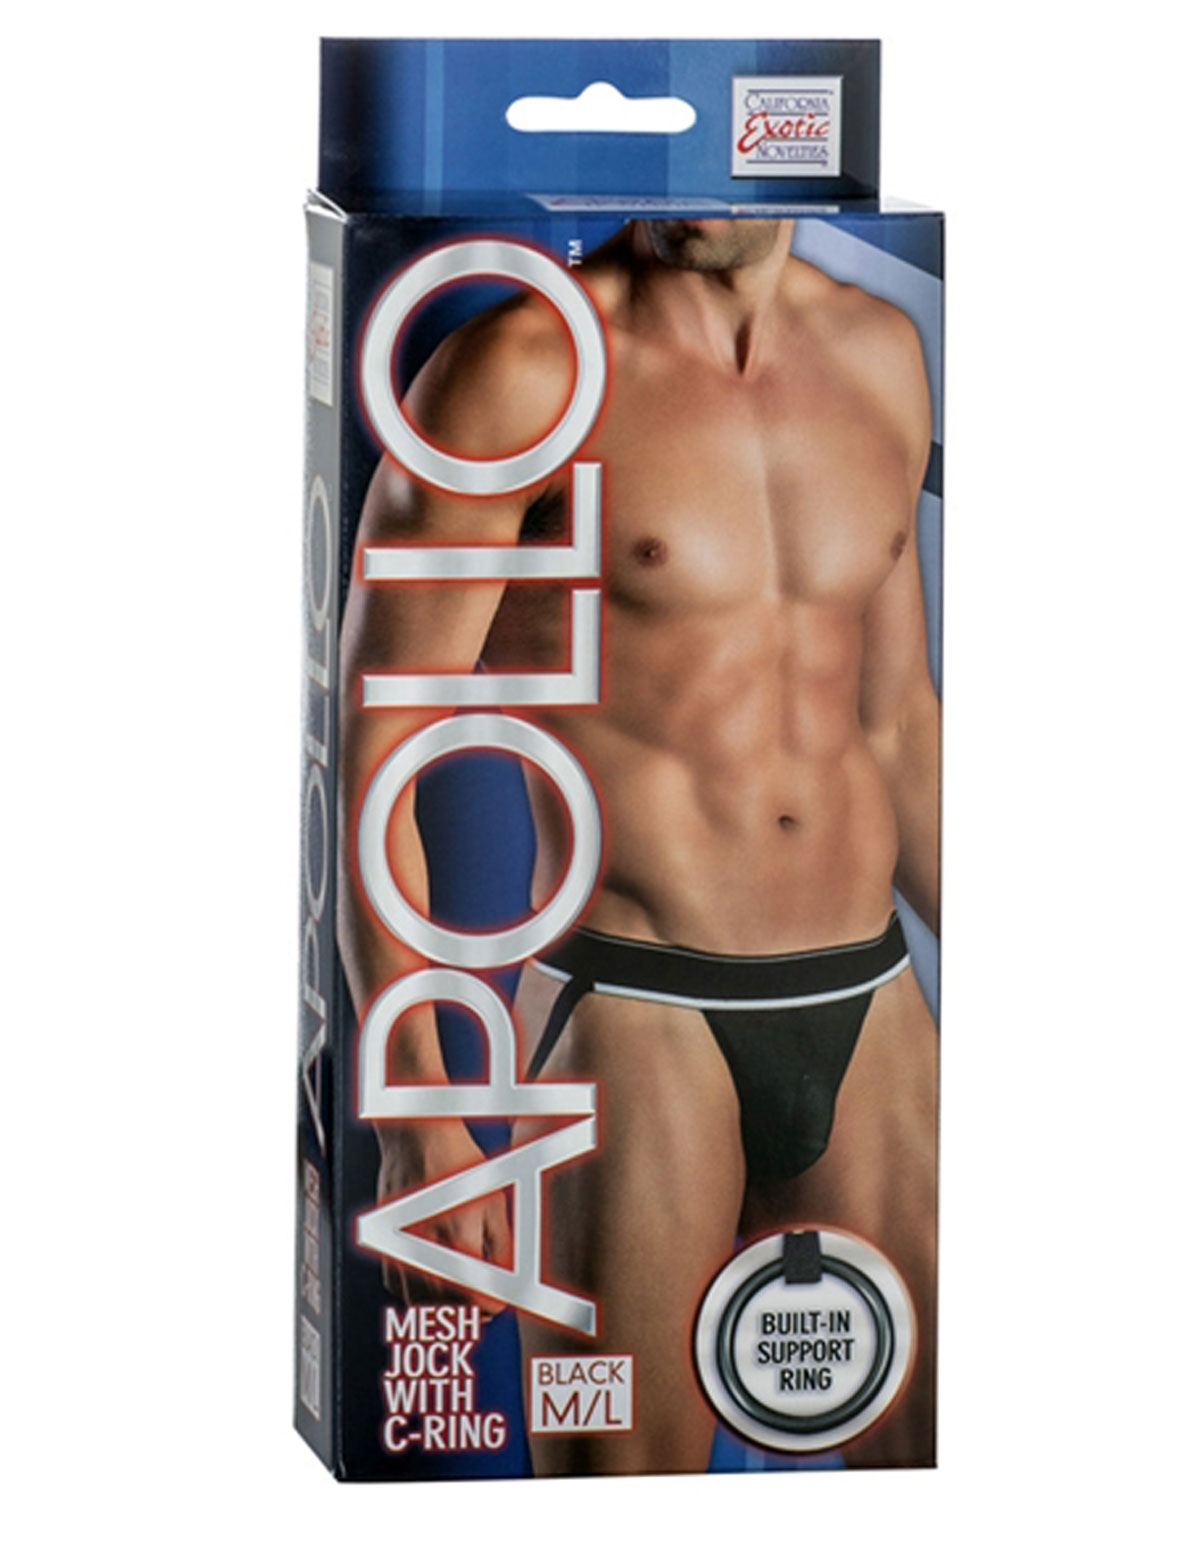 Apollo Mesh Jock With C-Ring